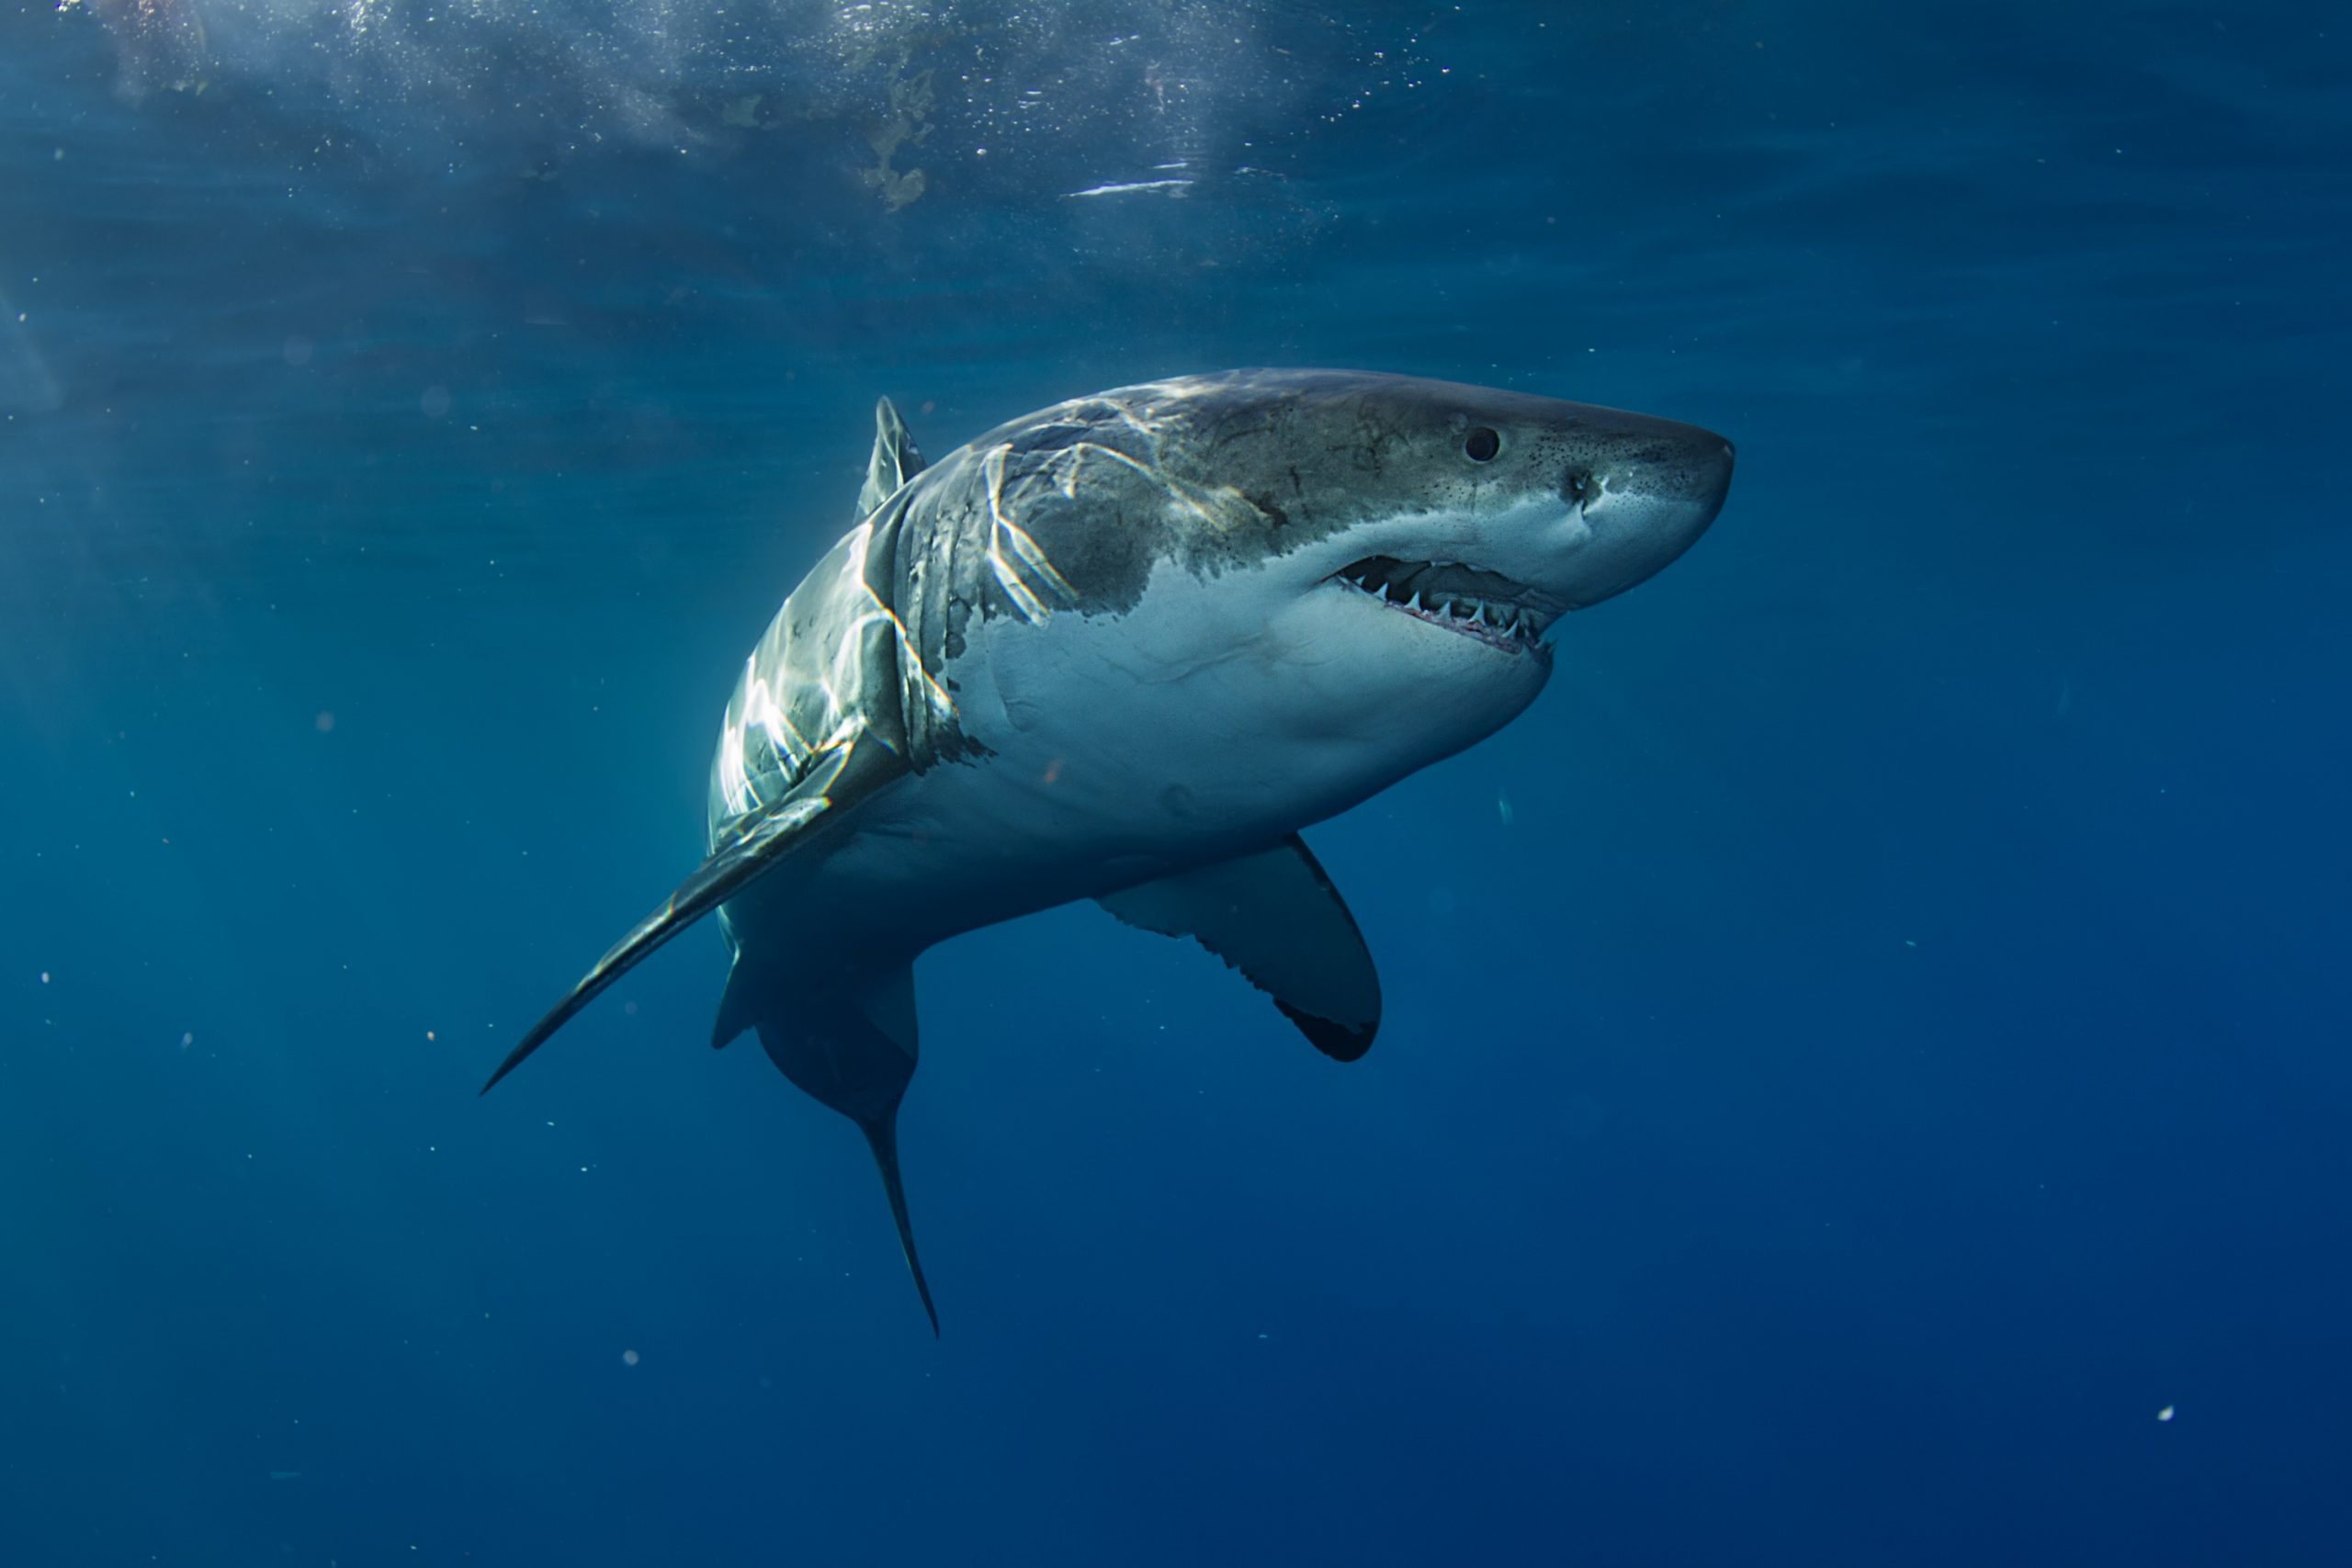 Great White Shark in Pacific ocean